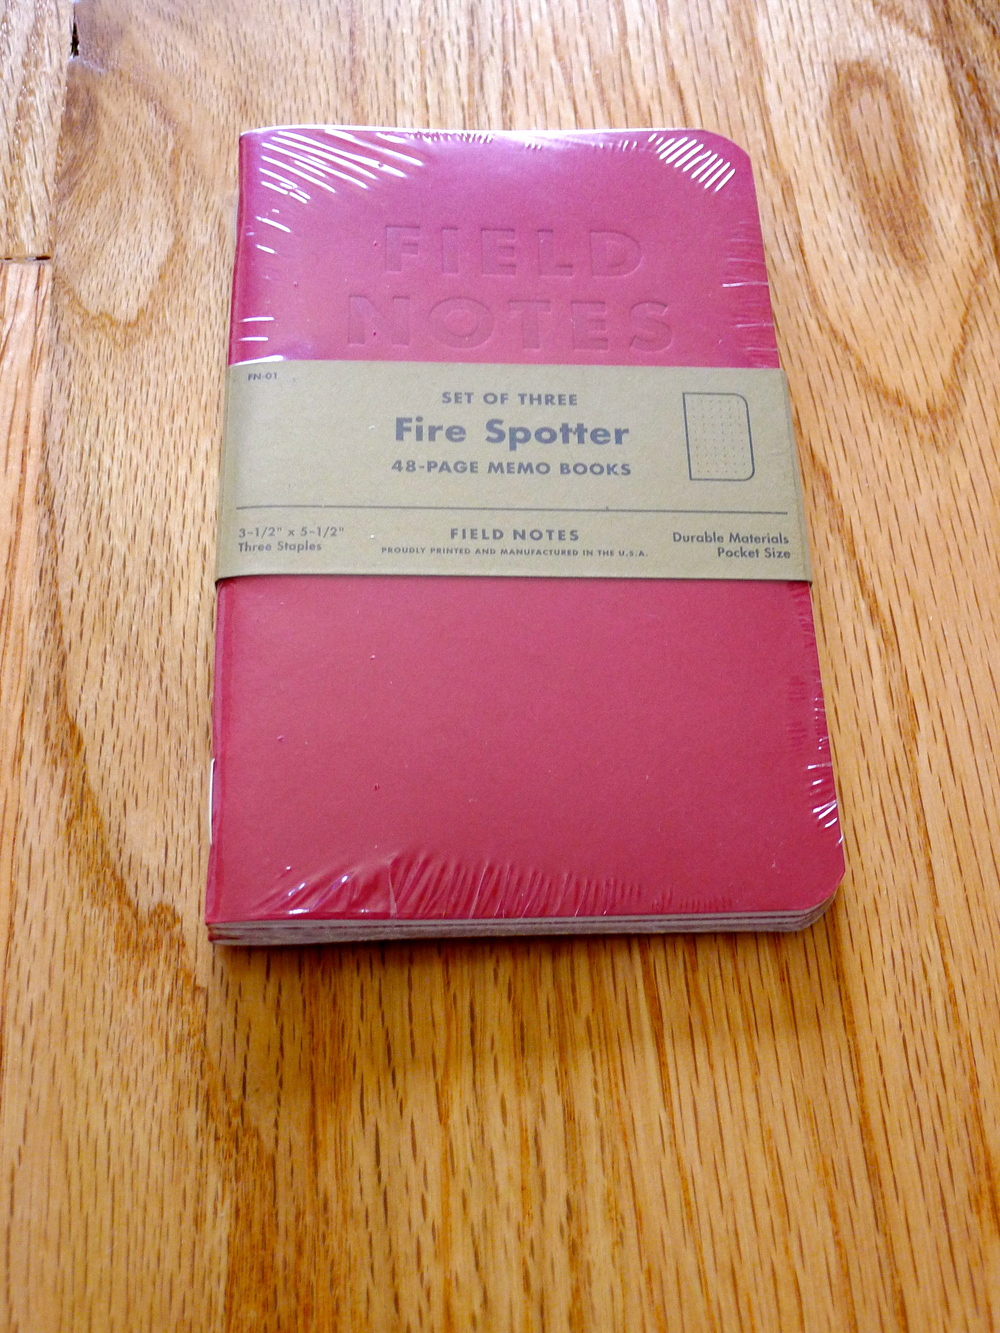 Field Notes Fire Spotter Edition - Fall 2011